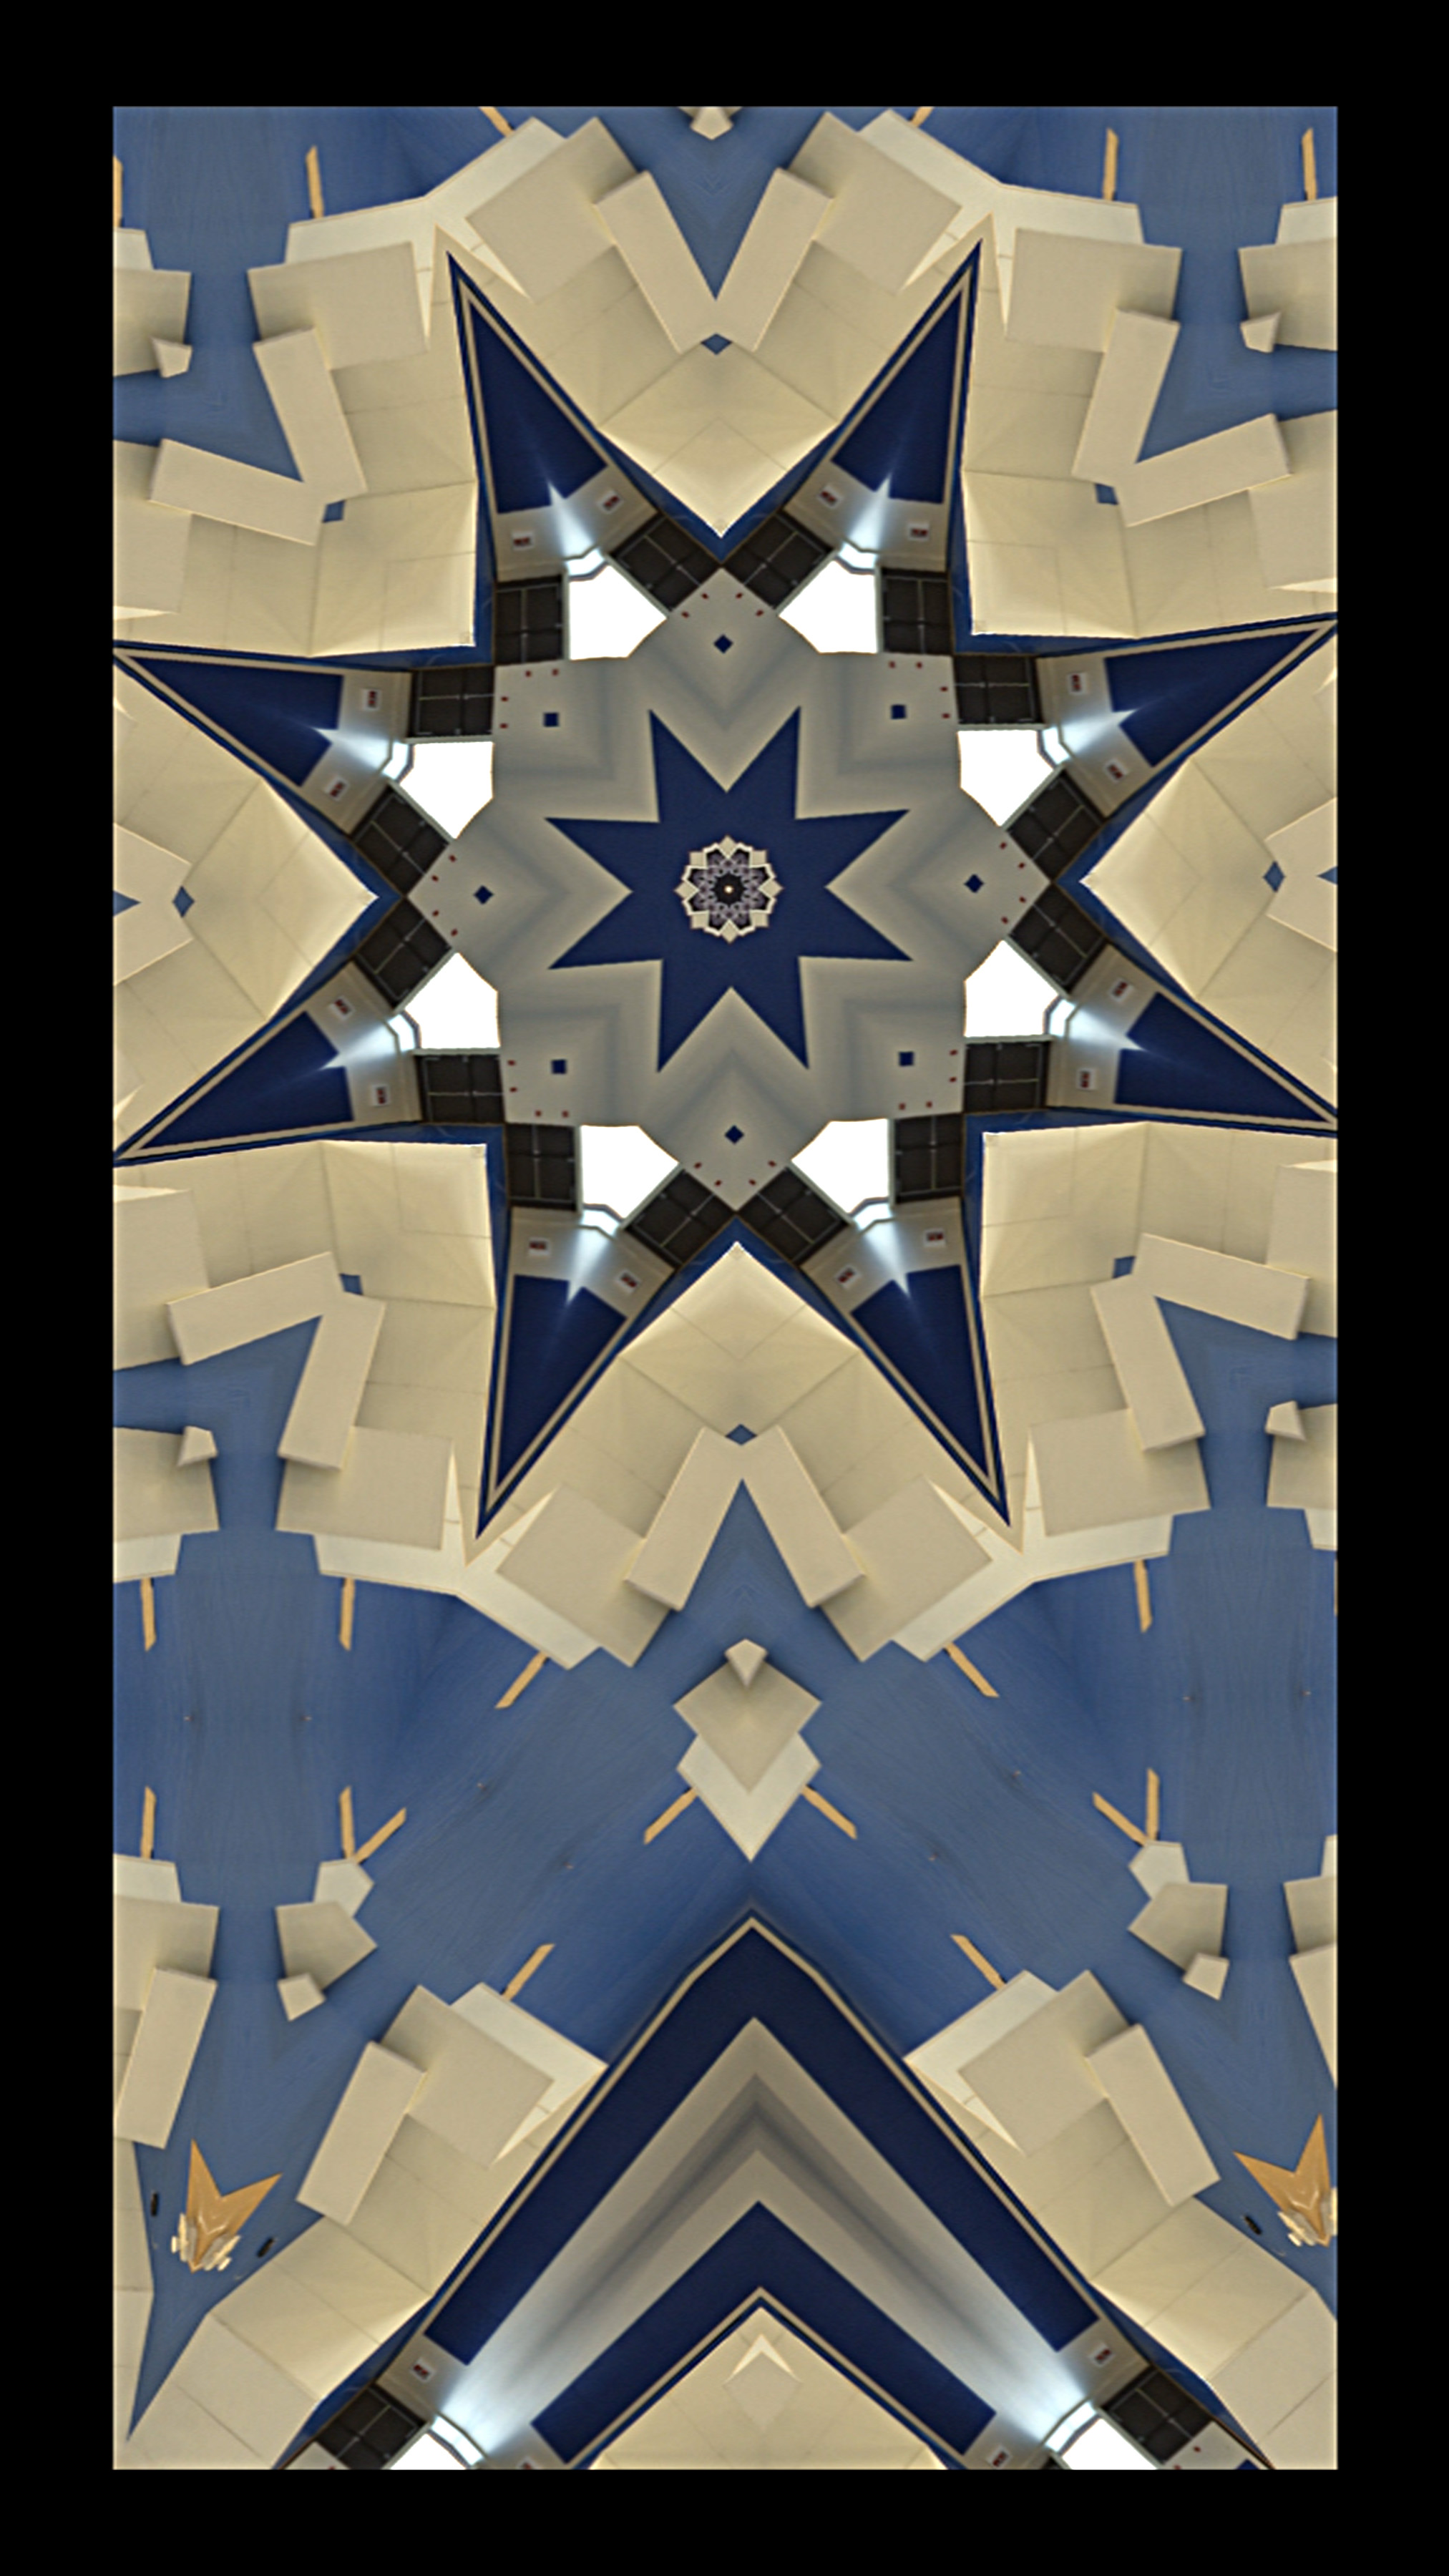 Mary Lucier  Video Start Quilt,  2013 Video Continuous loop Retail Value: $6000 Opening Bid: $3000